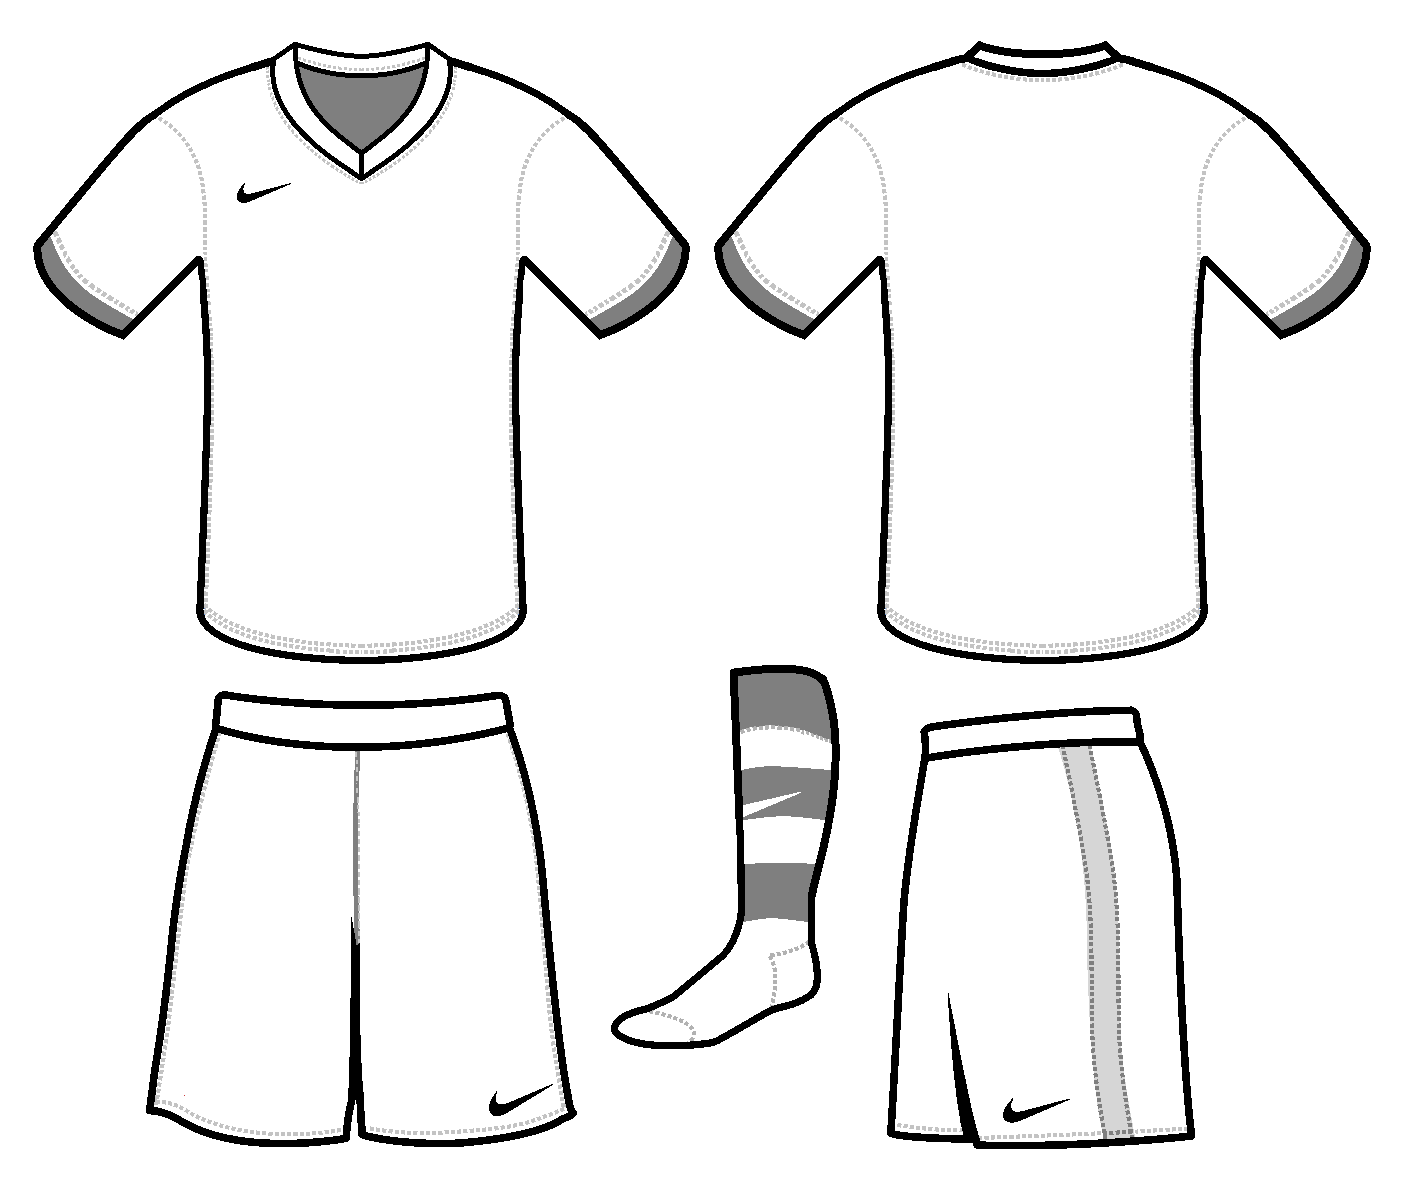 Motorcycles Soccer Jersey Design Template Soccer Jersey Design Template Soccer Jersey Collection Soccer Jersey Football Jersey Outfit Soccer Uniforms